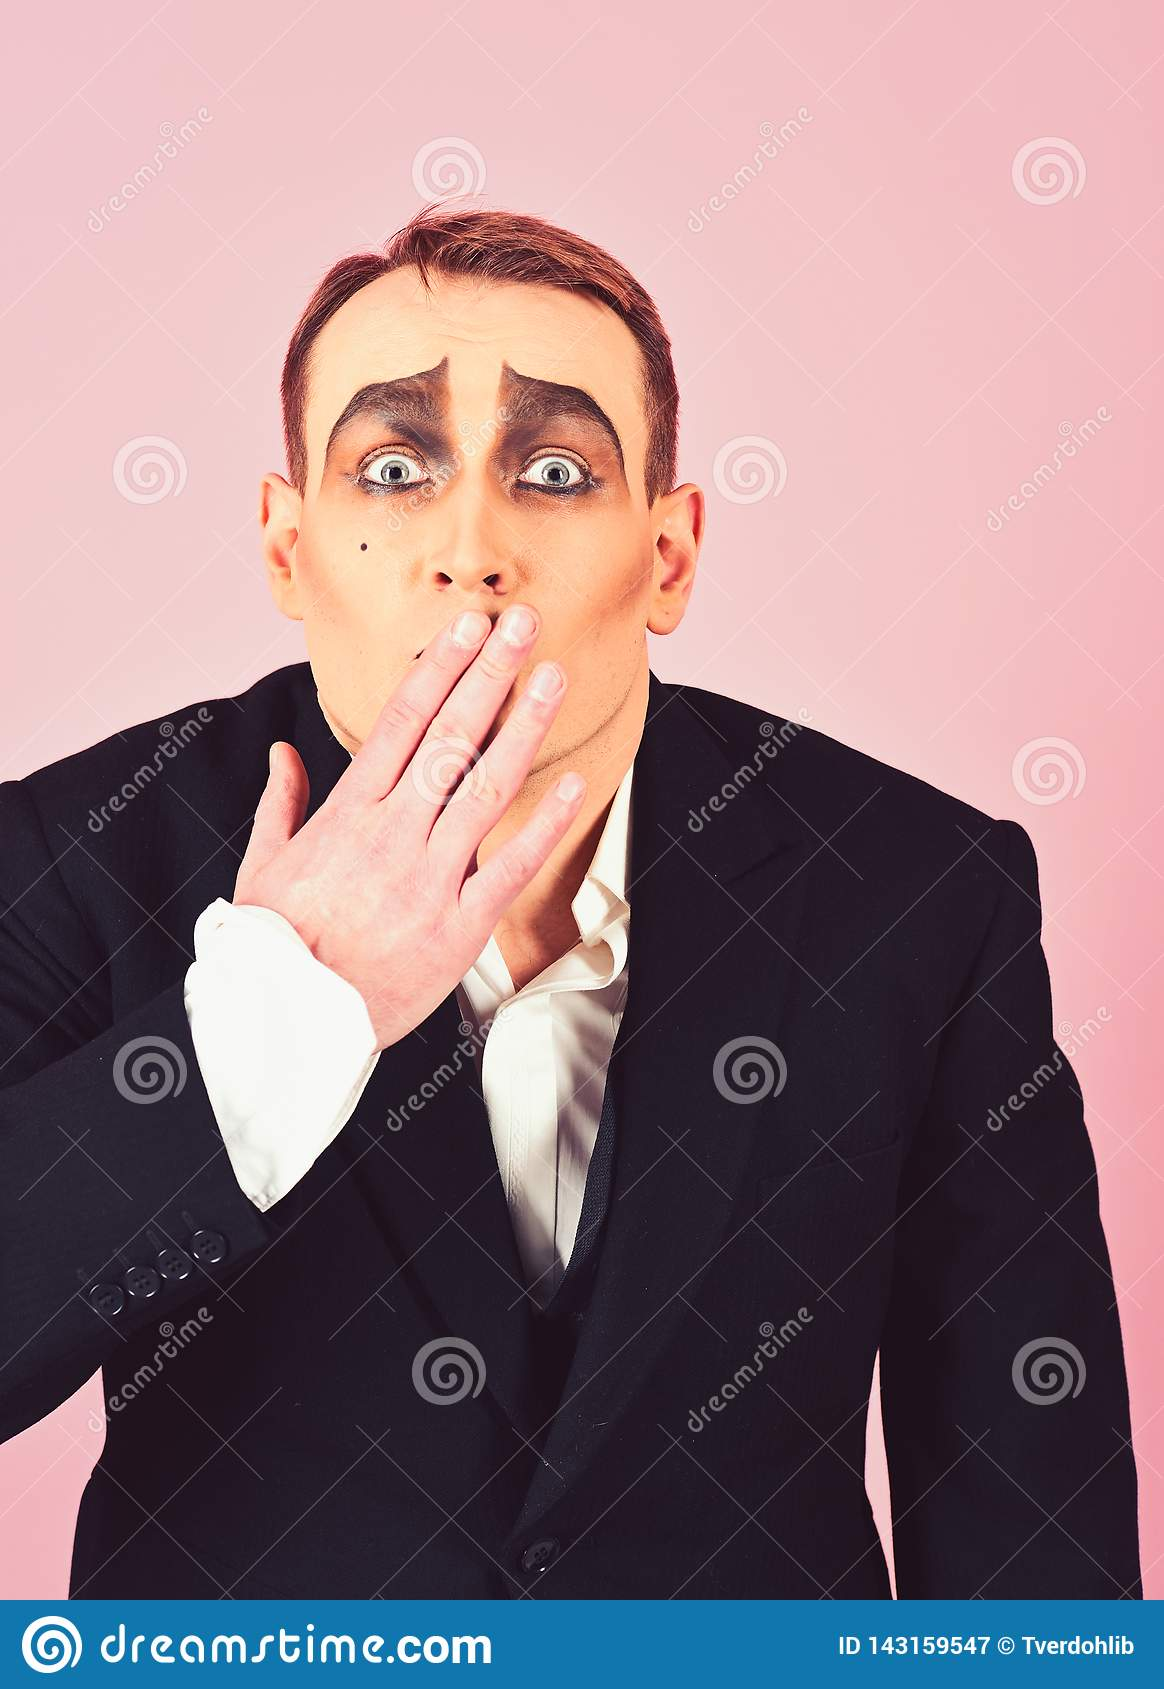 Keeping secret. Mime artist cover mouth with hand. Mime with face paint. Man actor with mime makeup. Theatre actor